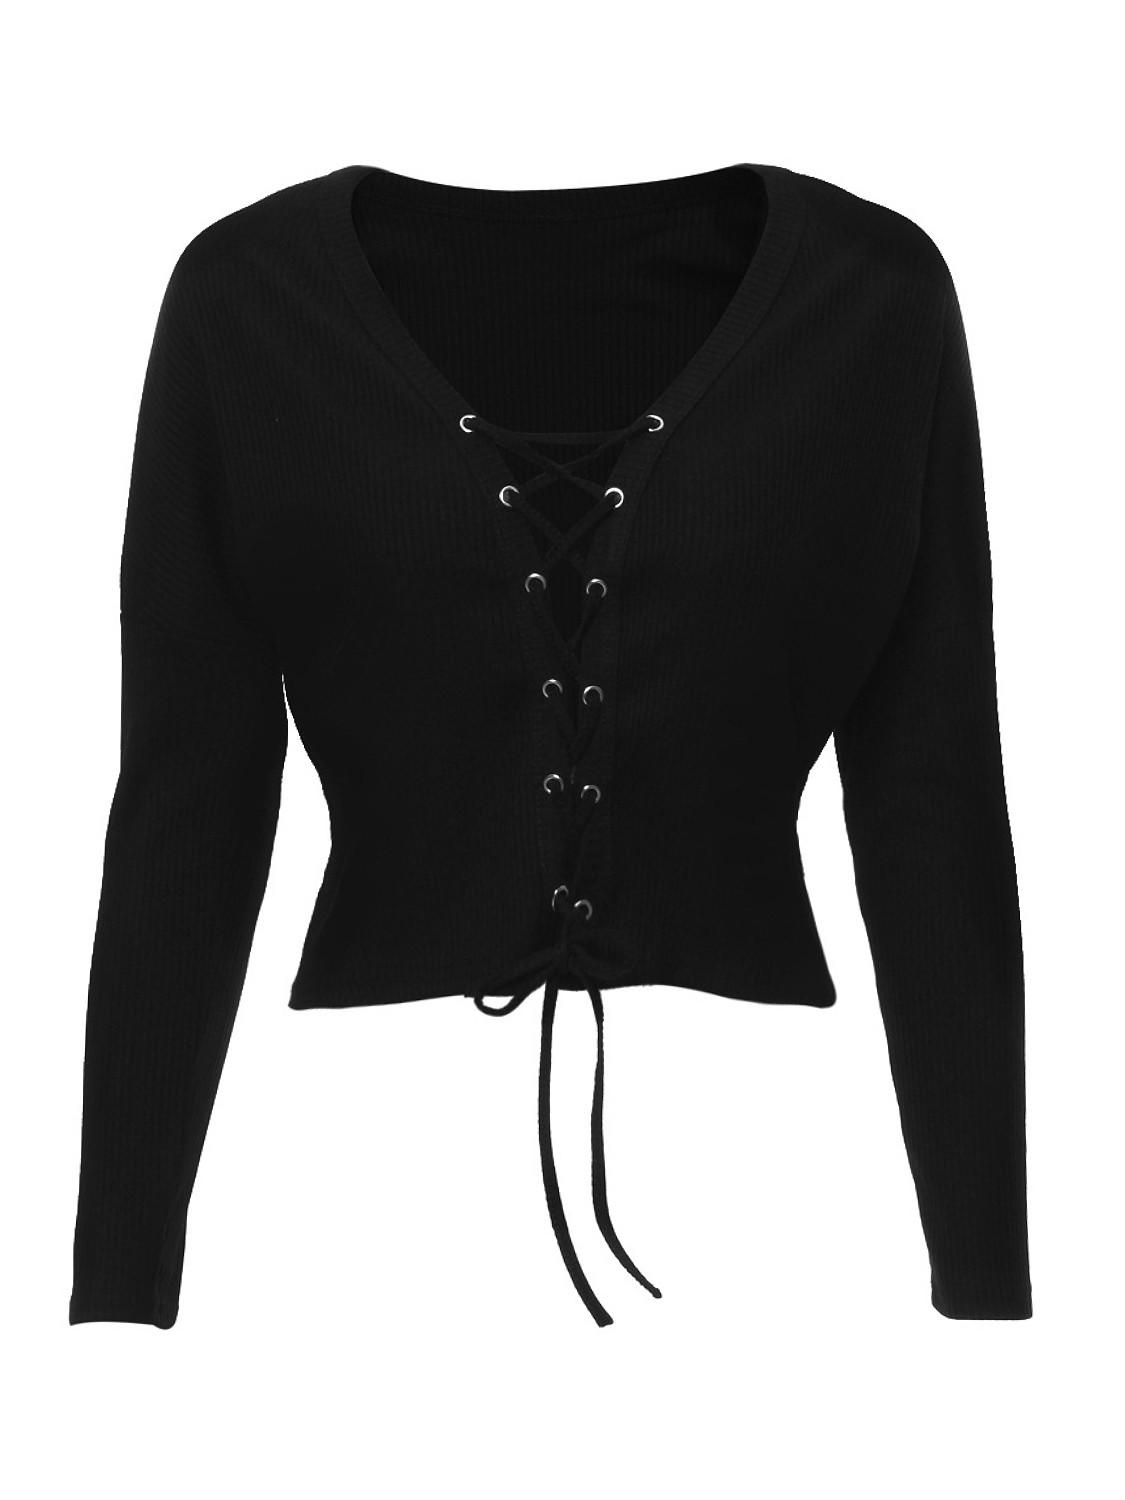 3472342d5a66 Black Plunge Neck Lace Up Front Knit from Midnight Bandit